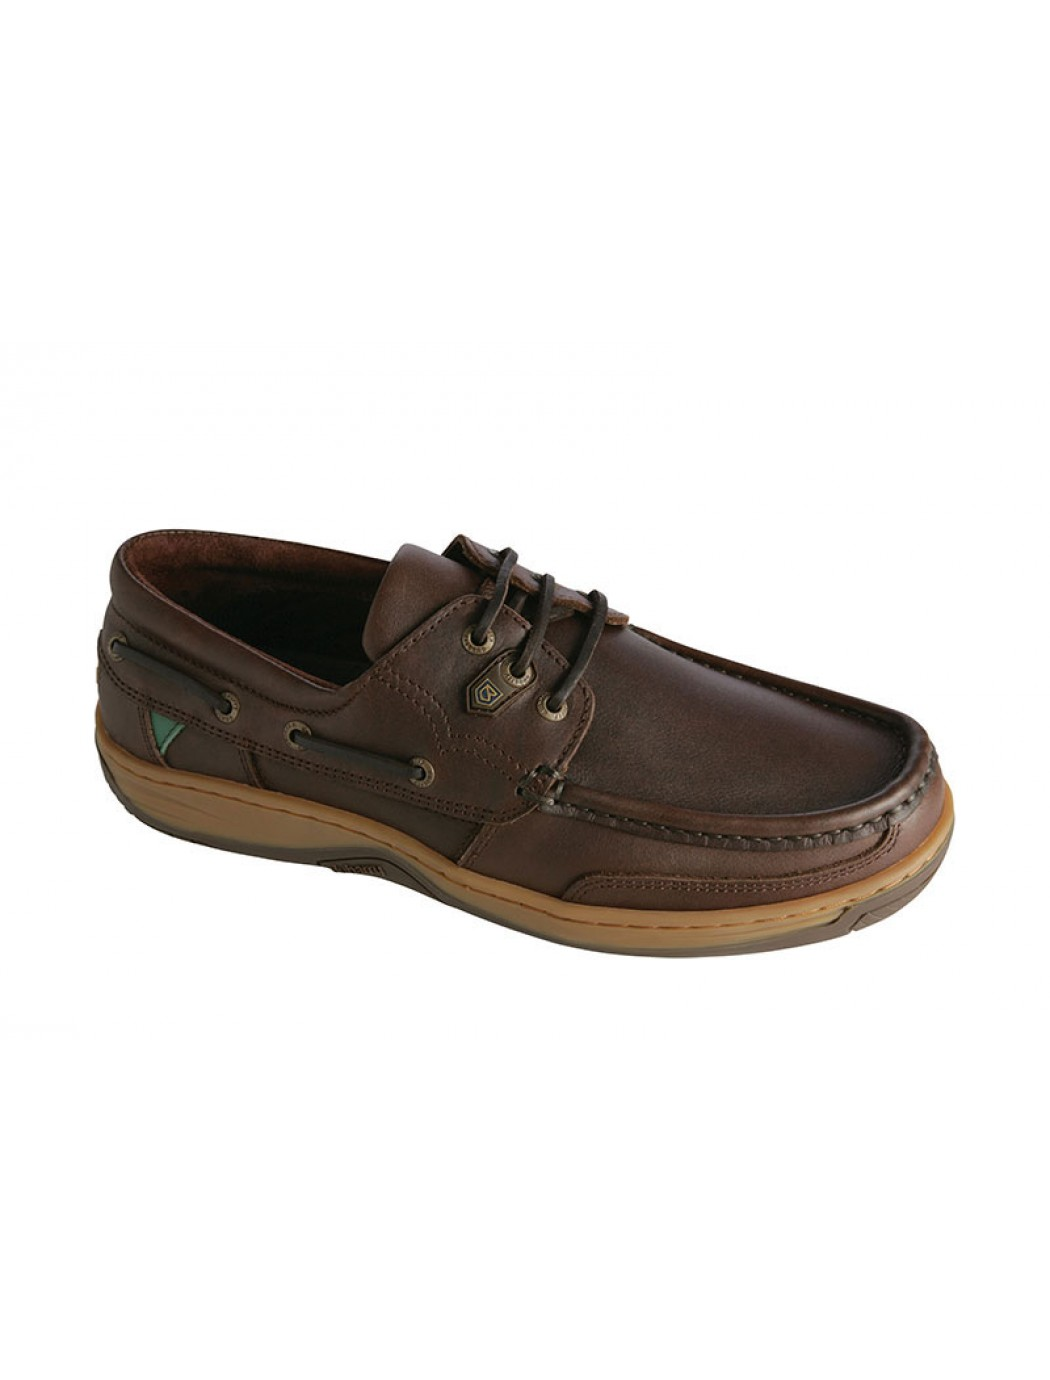 regatta-mens-decks-mahogany